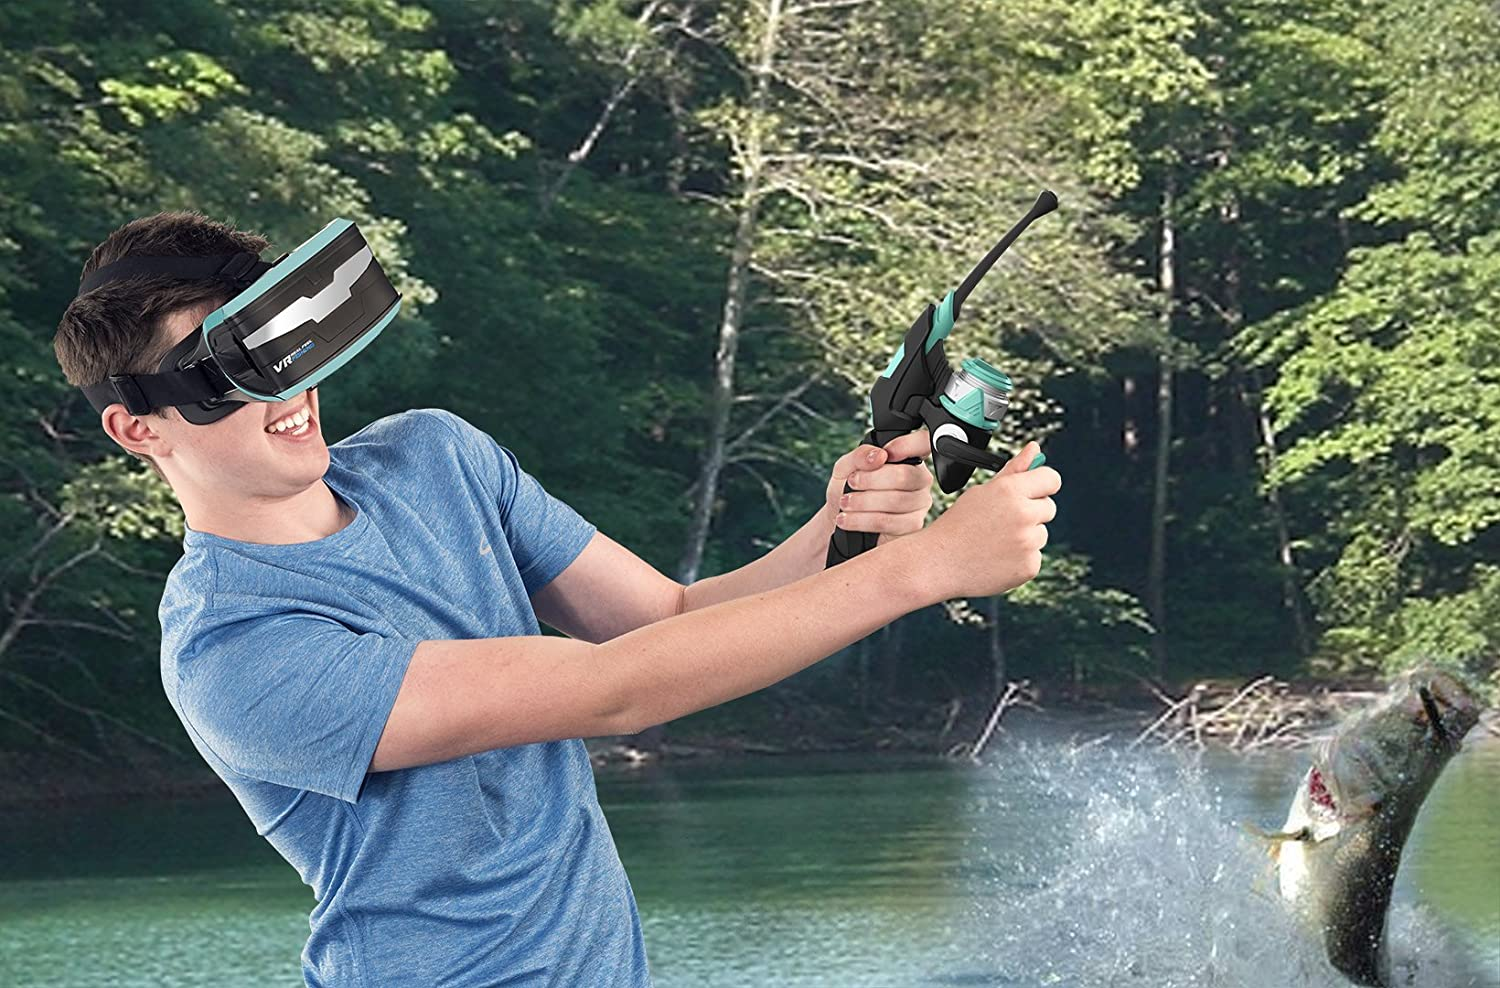 VR Entertainment VR Real Feel Fishing Mobile VR Gaming